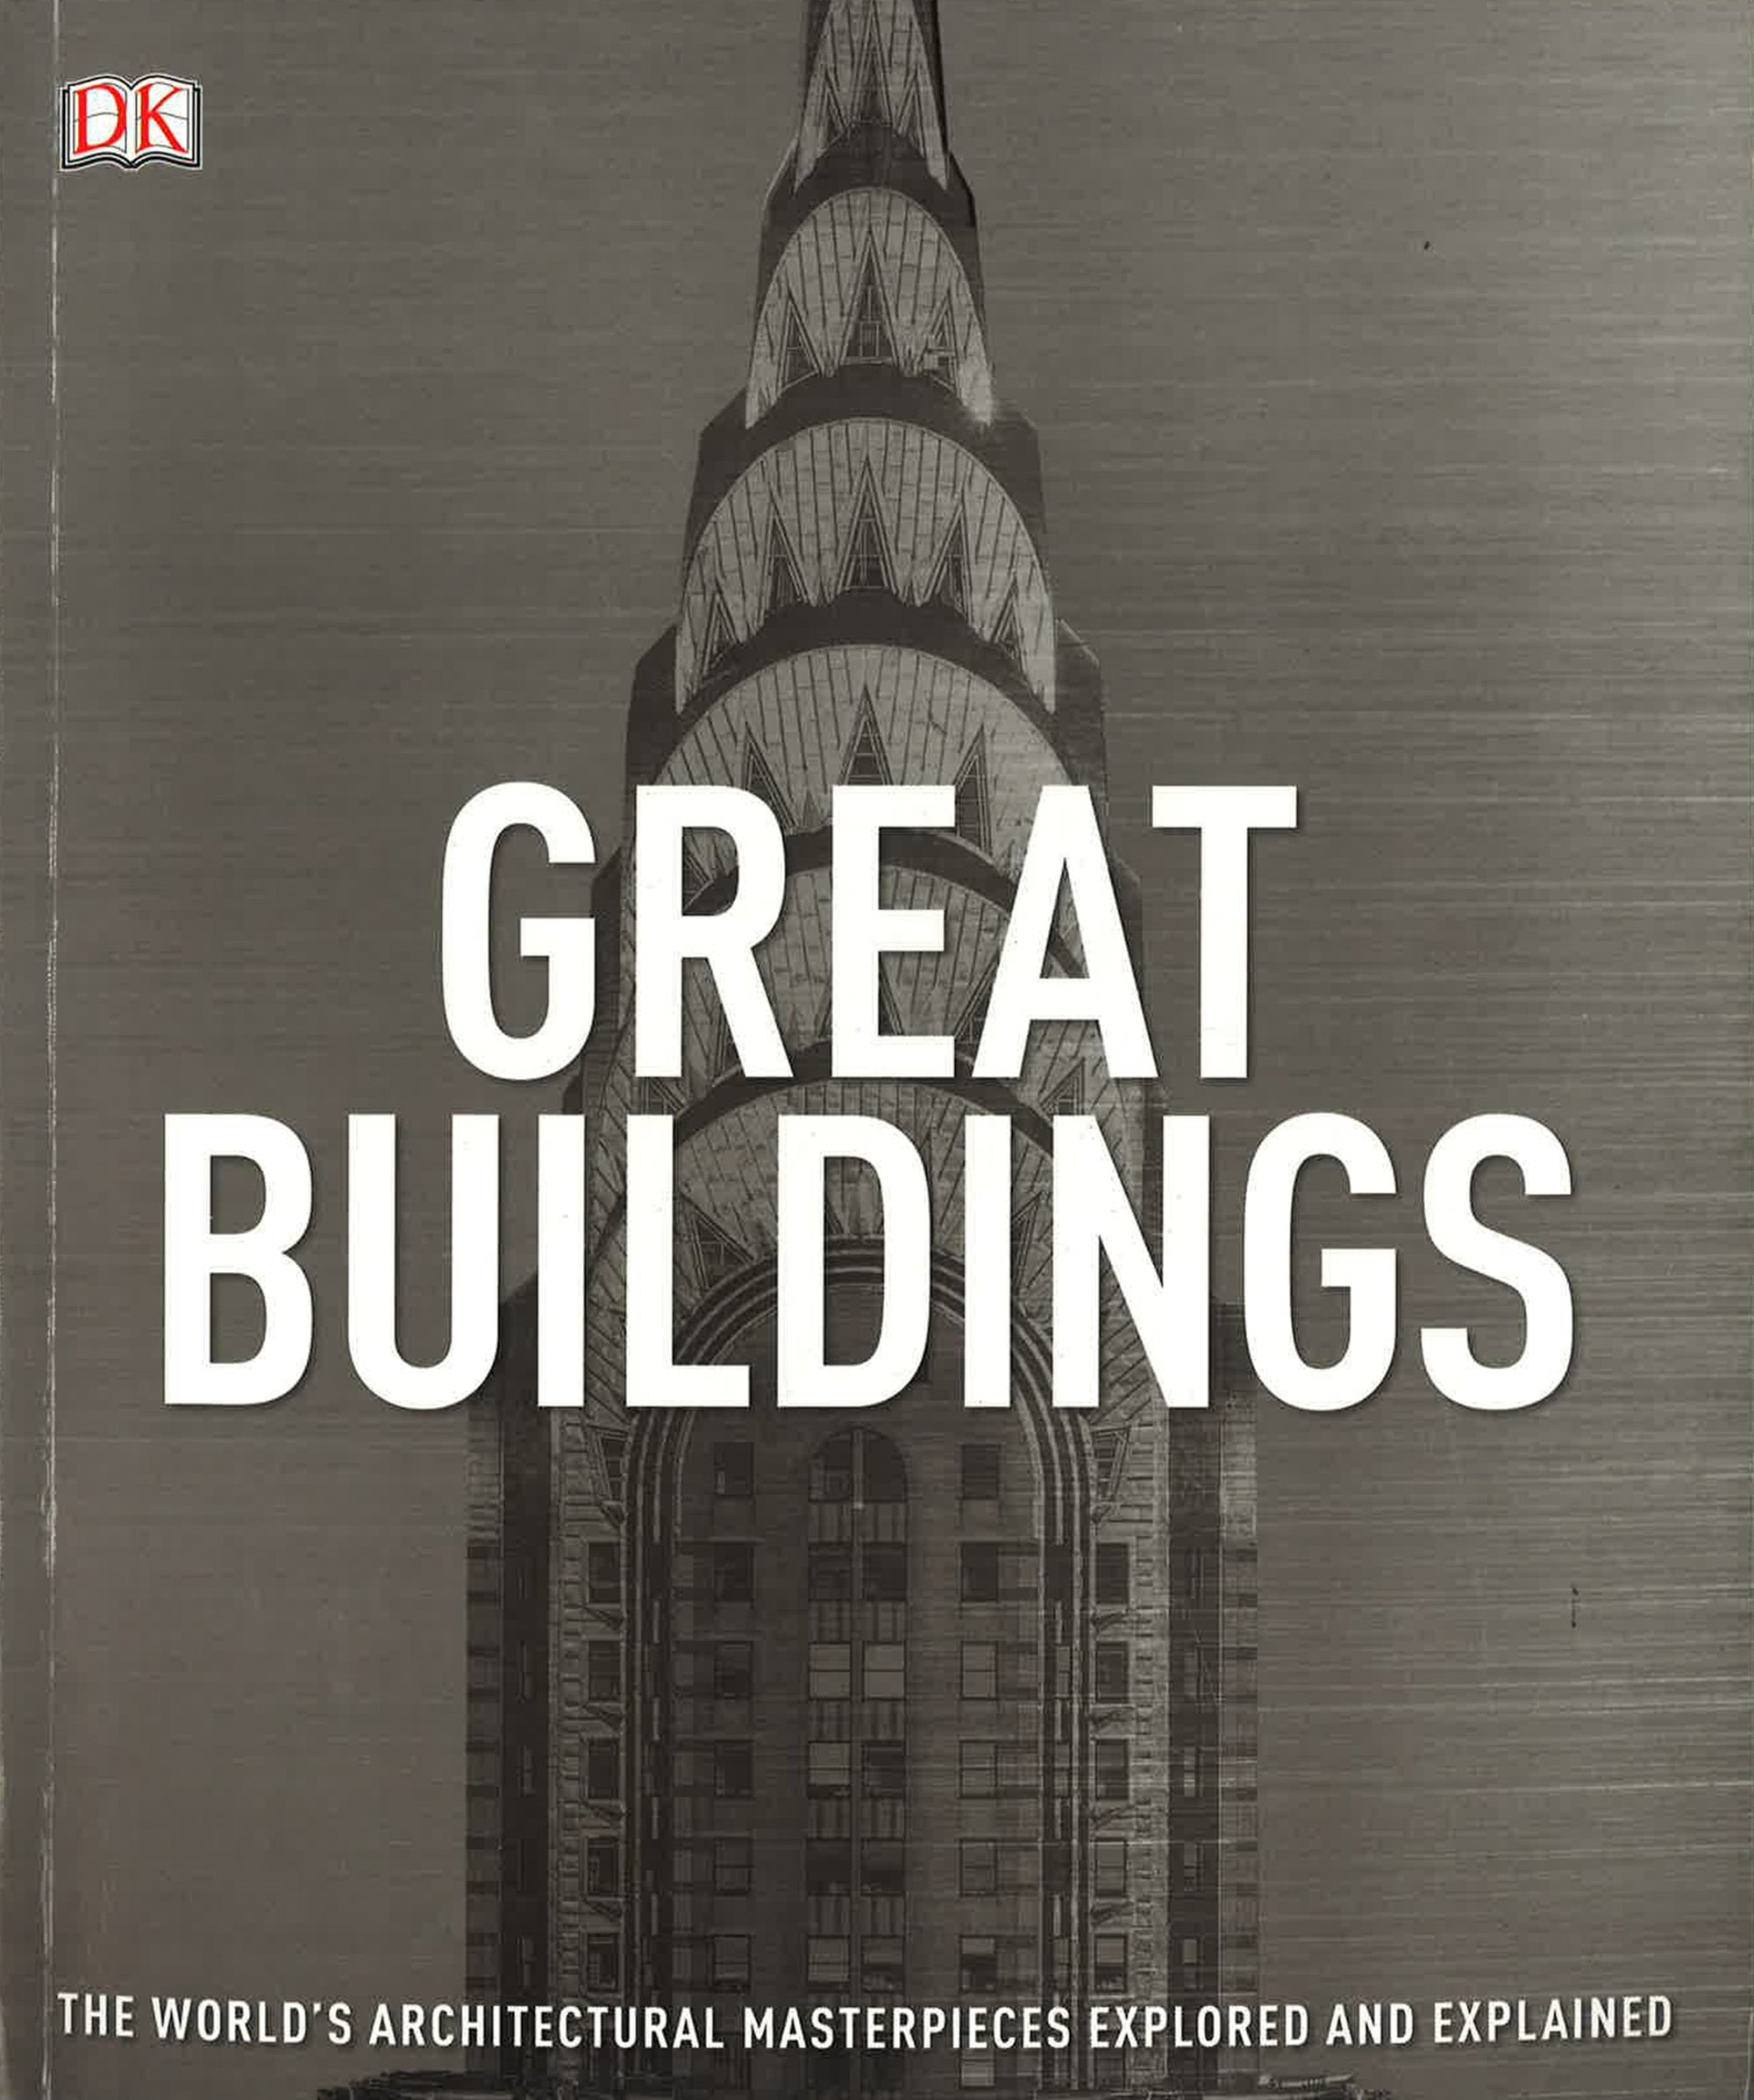 Great Buildings: The World's Architectural Masterpieces Explored And Explained (Dk)